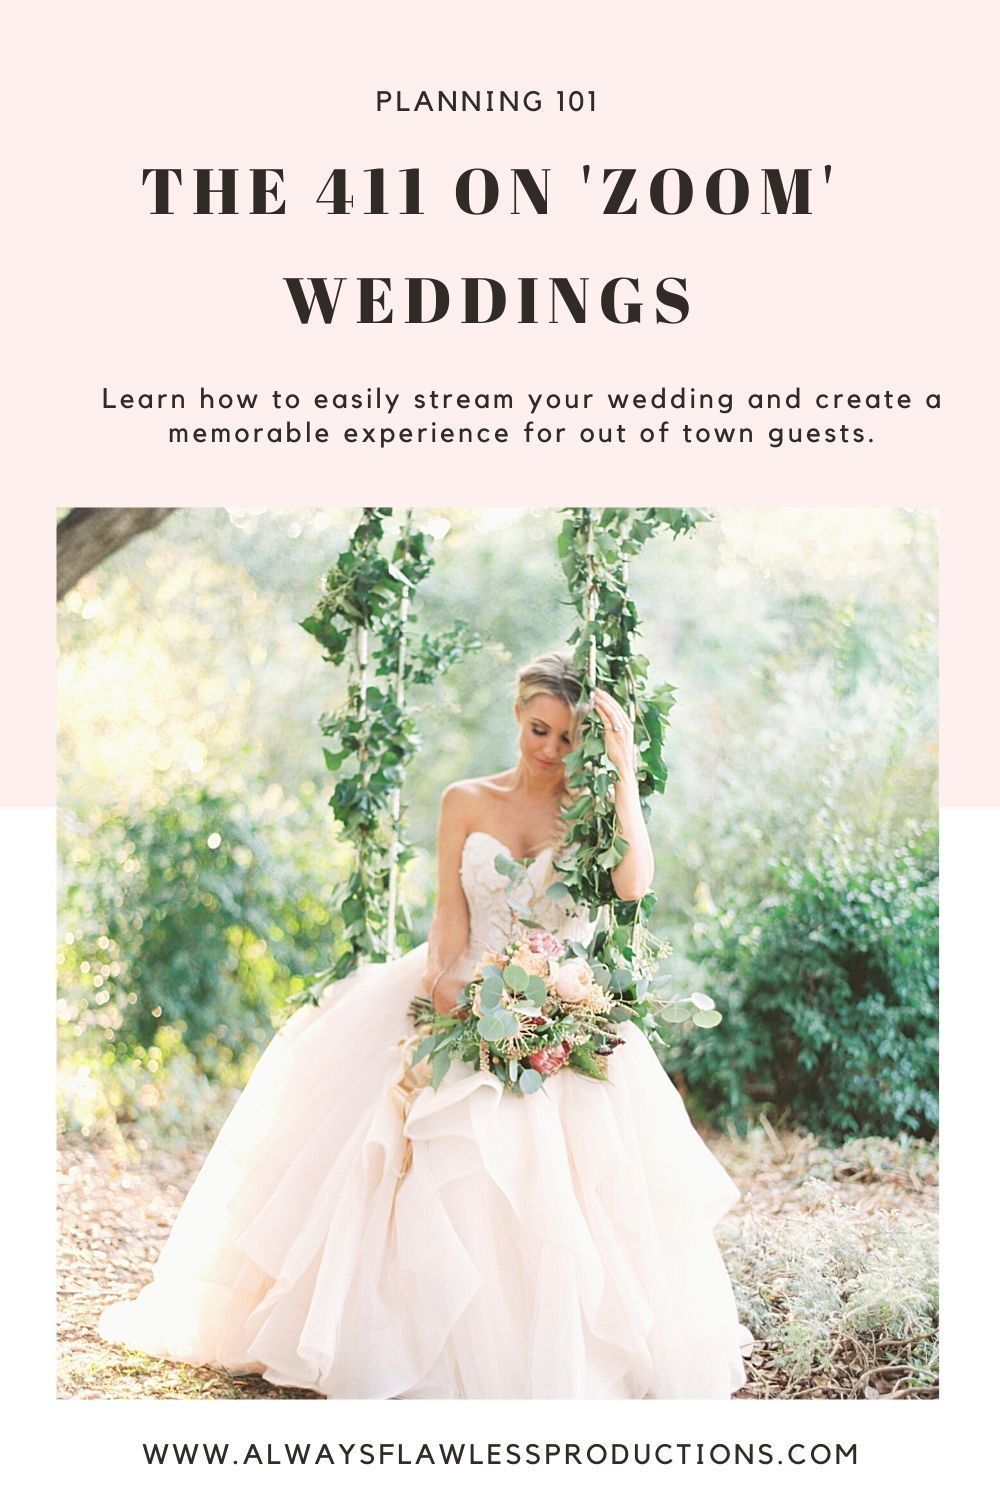 Learn How To Live Stream Your Wedding Wedding Planning Tips Tricks And Advice In 2020 Wedding Ethereal Wedding Wedding Planning Tips